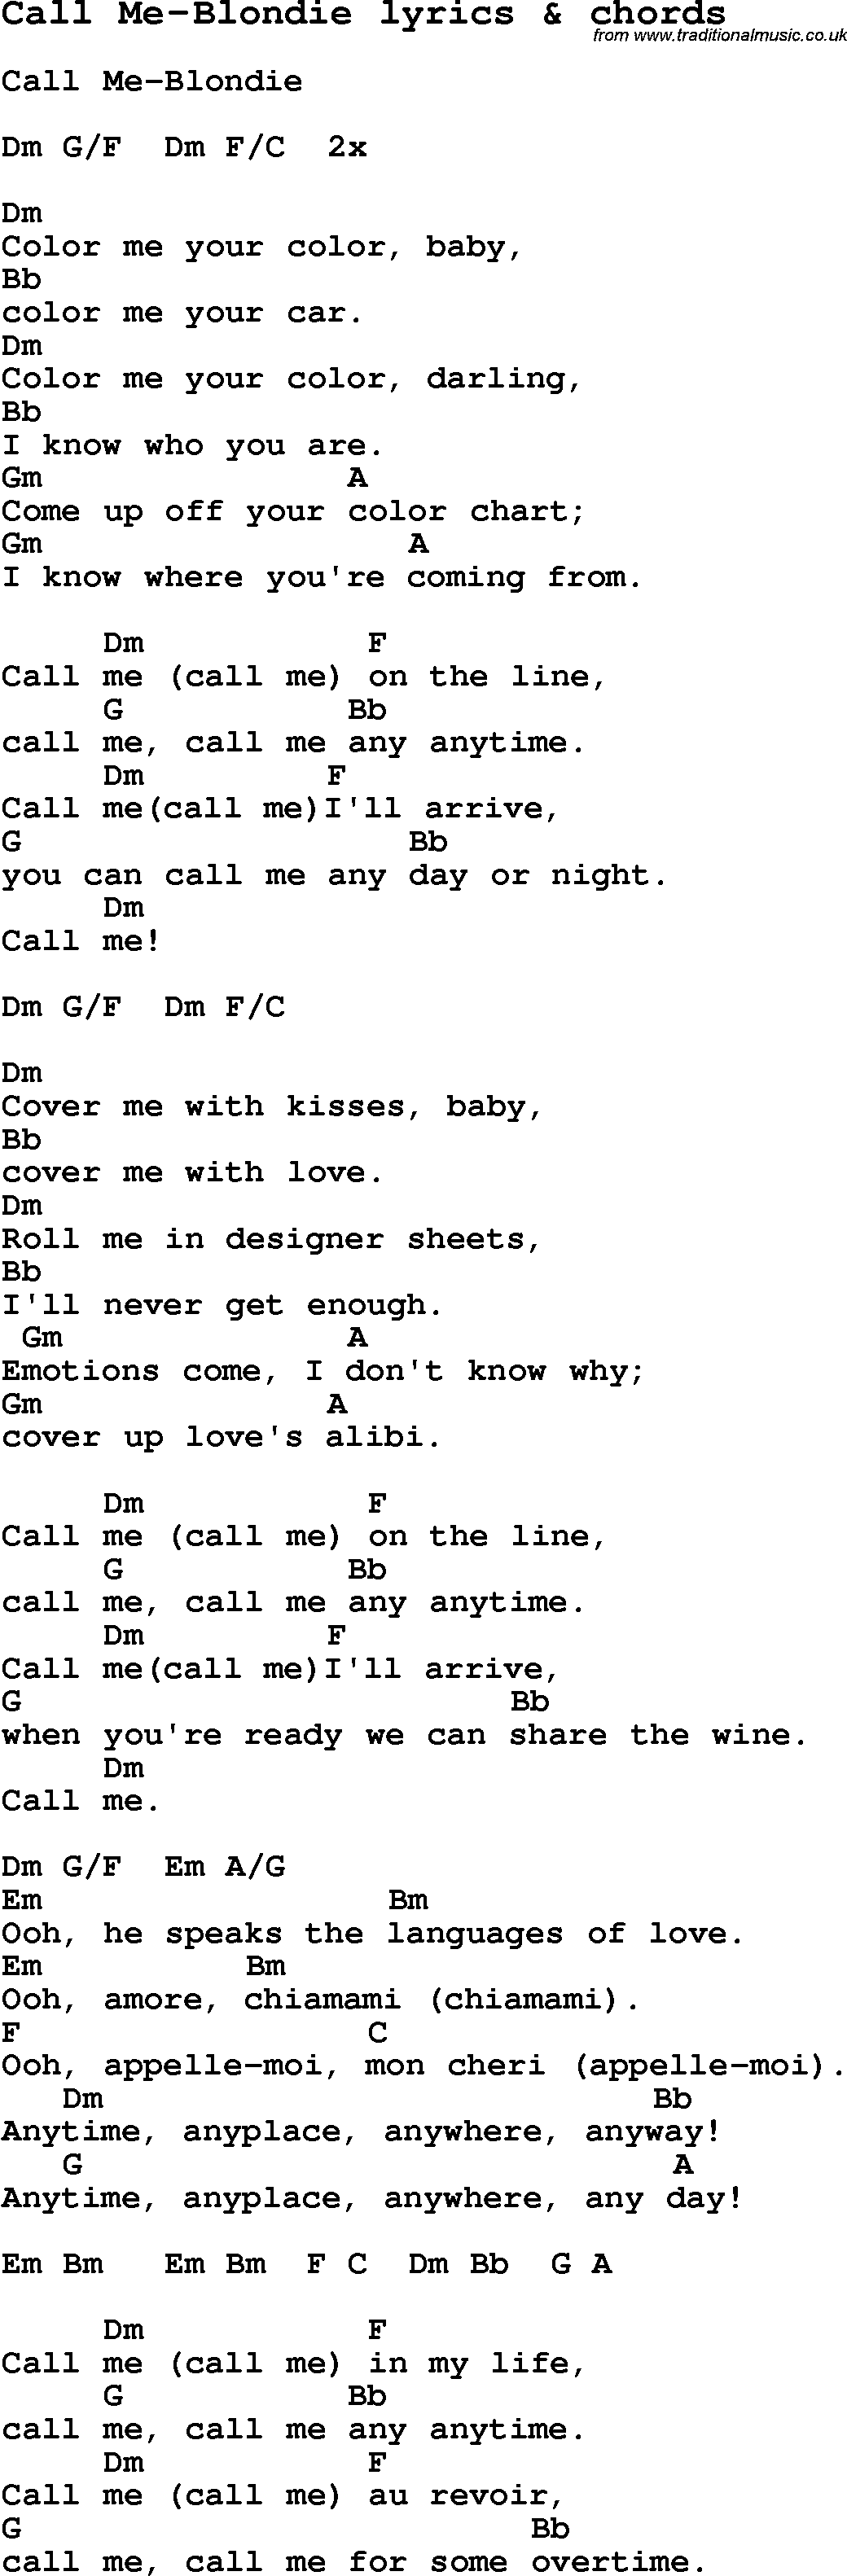 Love Song Lyrics for:Call Me-Blondie with chords.